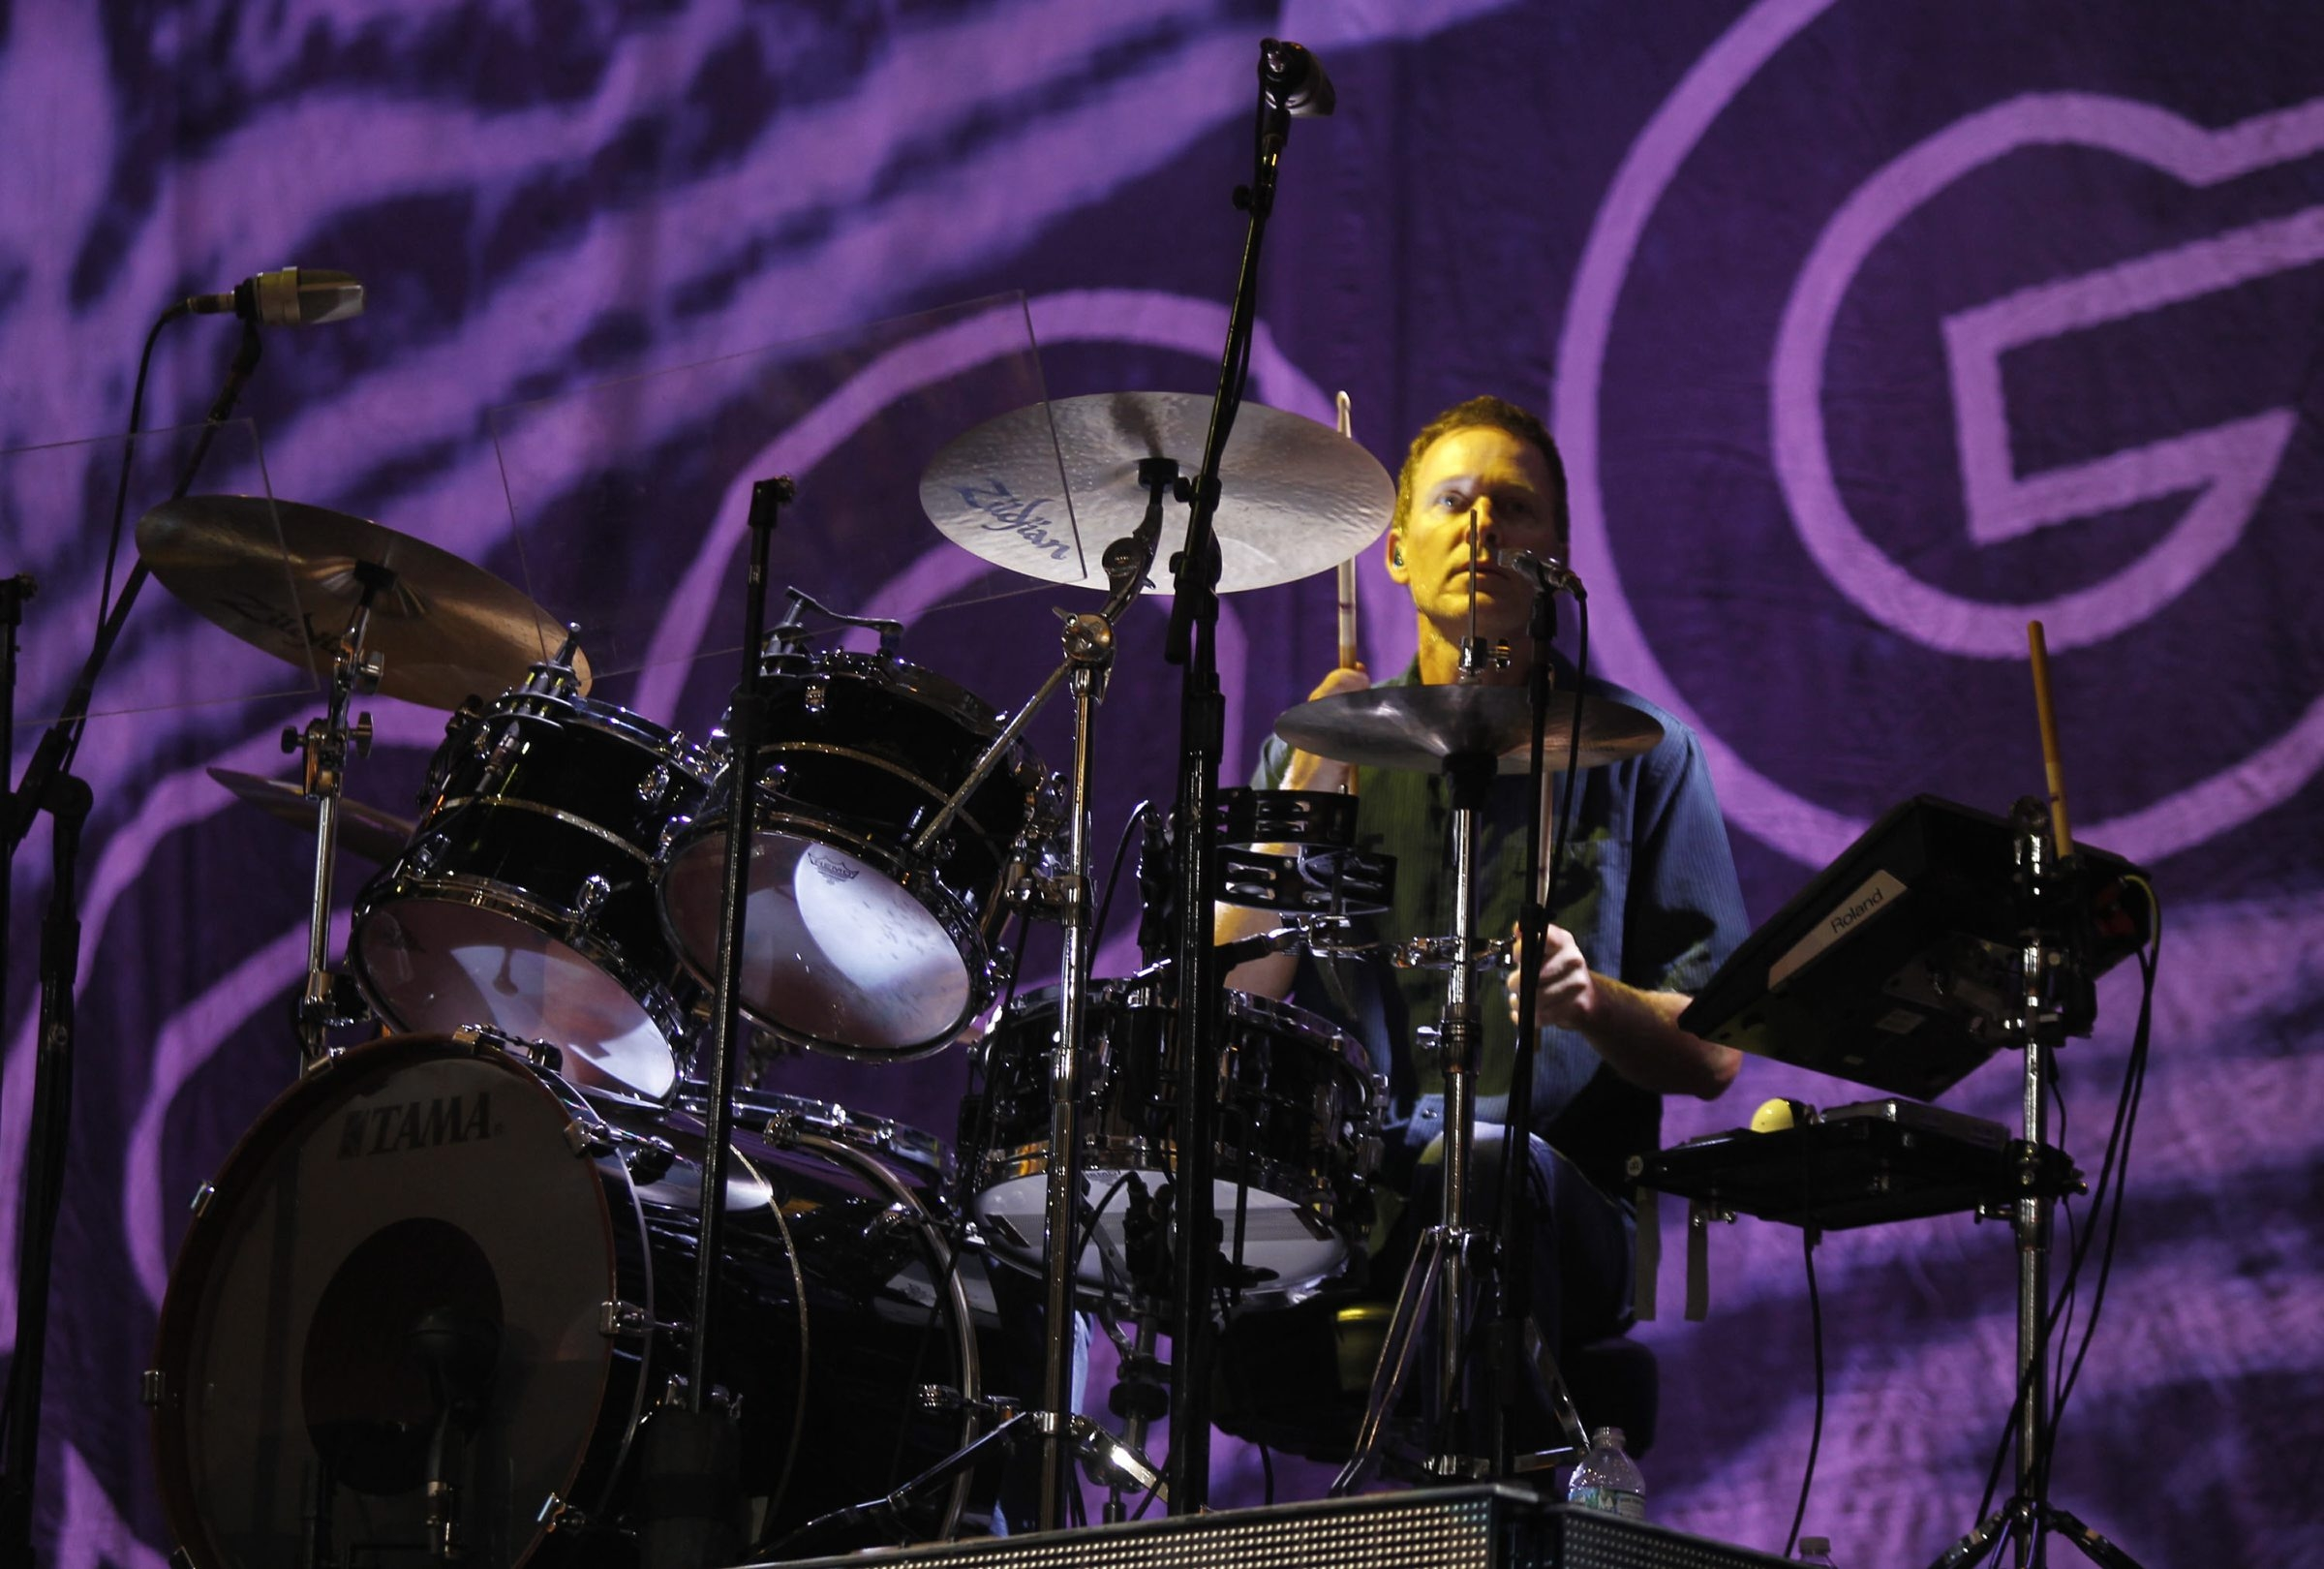 The Goo Goo Dolls have fired drummer Mike Malinin, who has been with the band for 19 years.